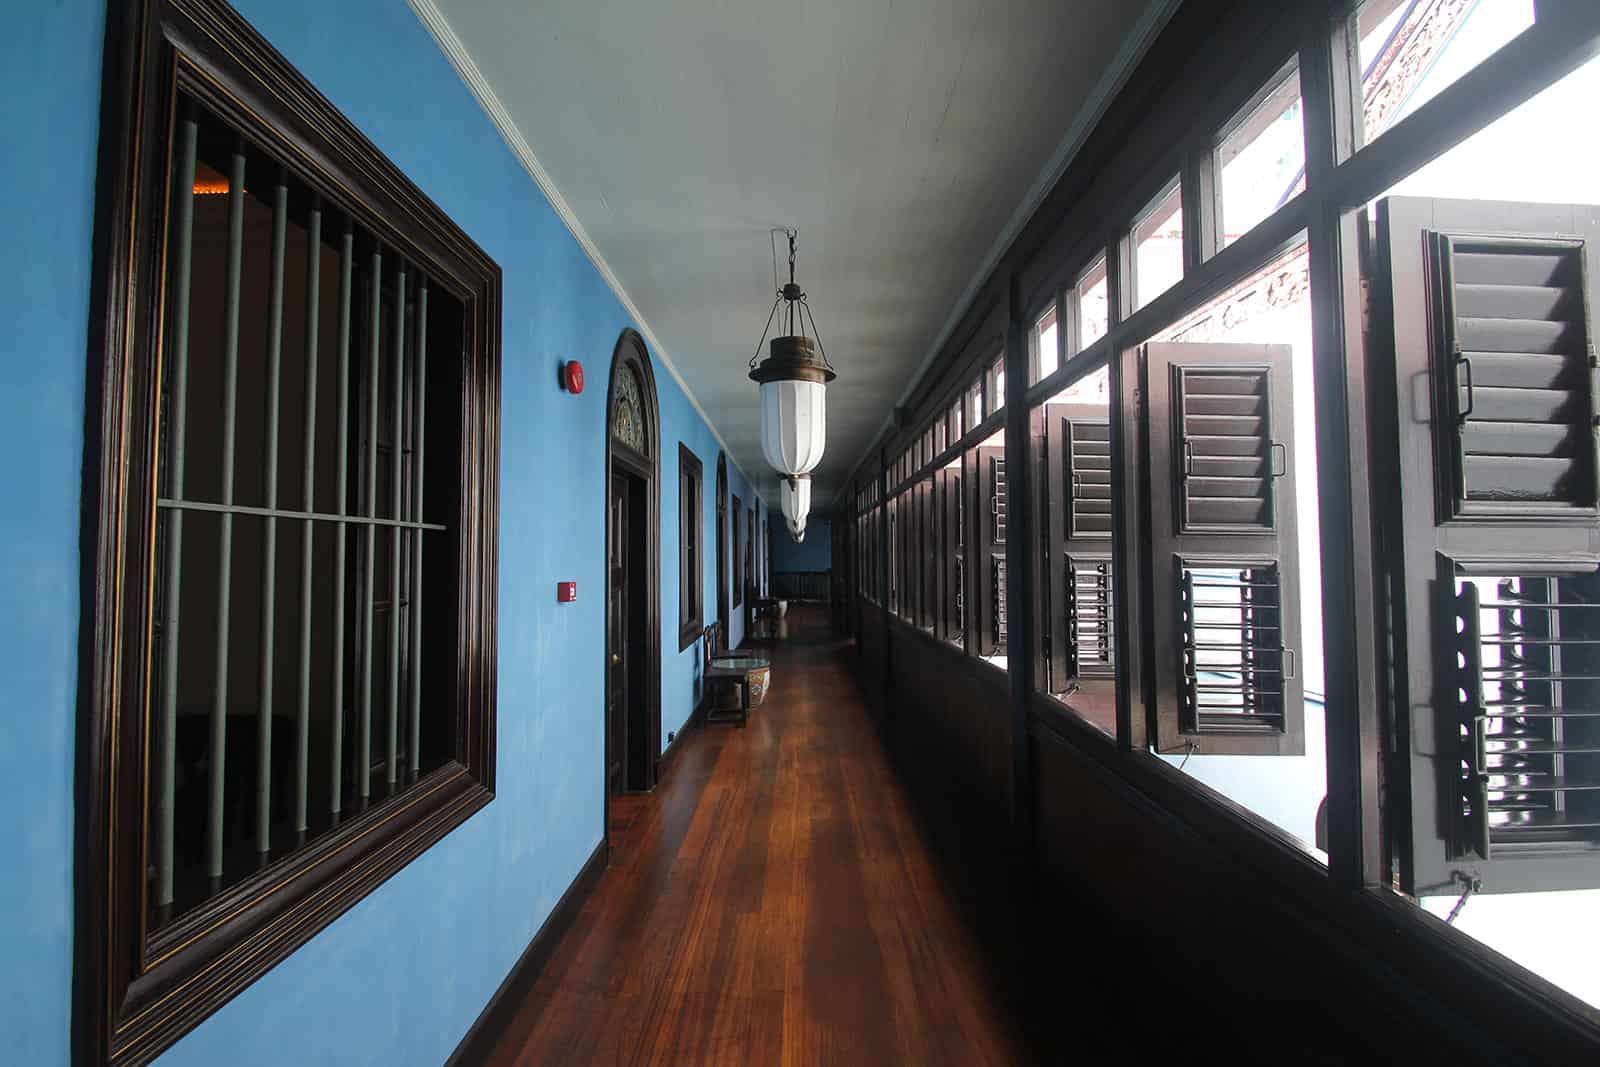 boutique-hotel-penang-island-blue-mansion-architecture-13_v2crmy Courtyard